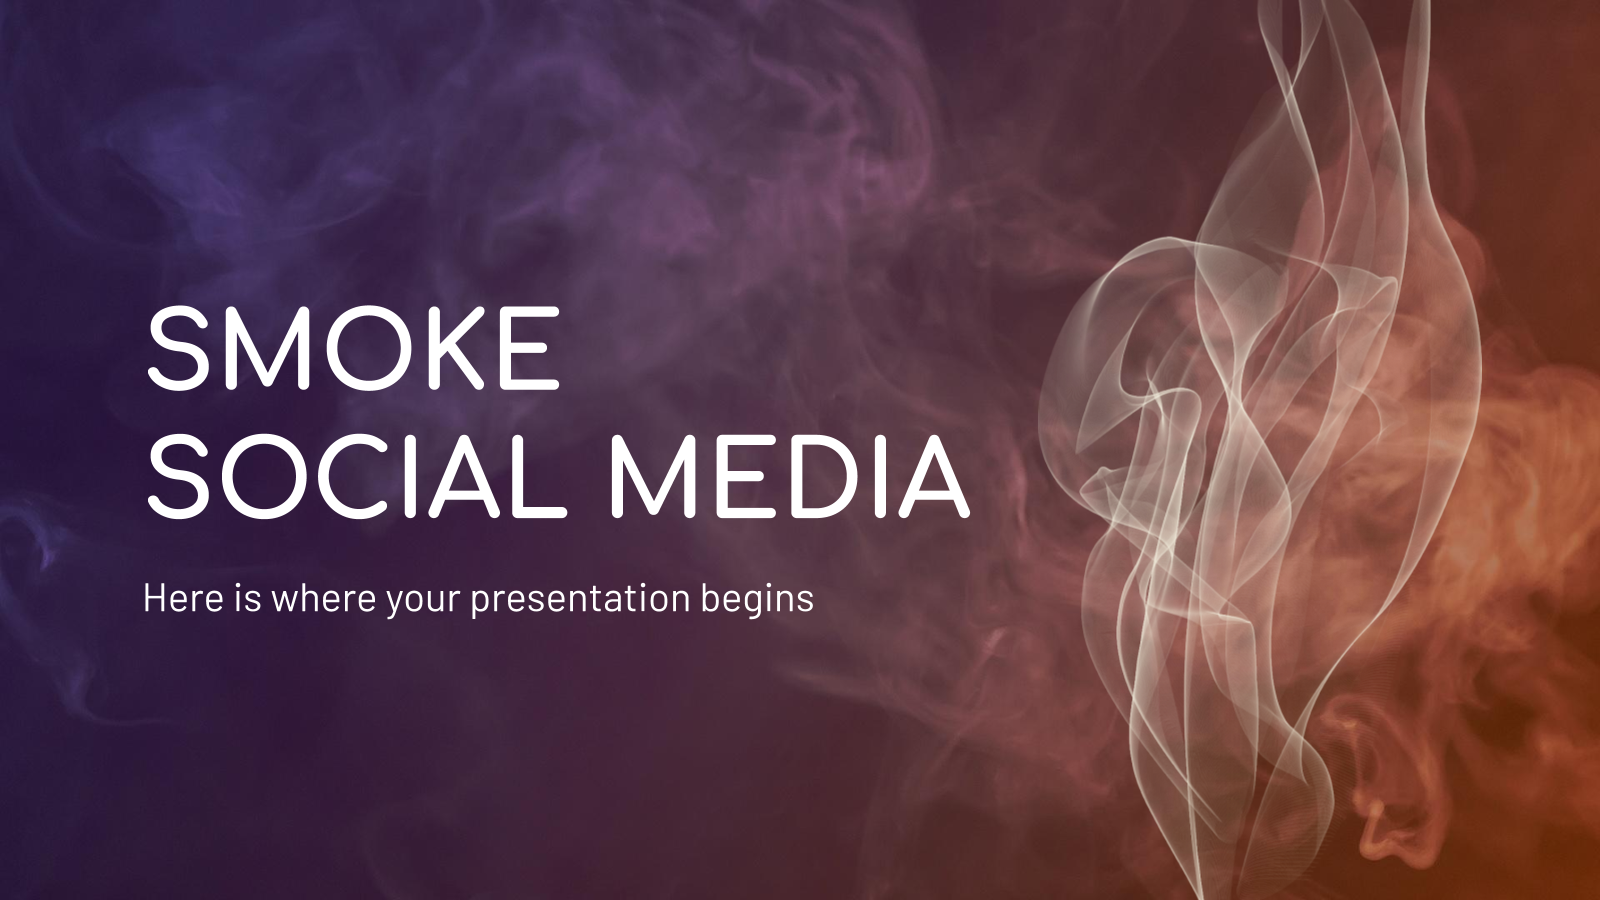 Smoke social media presentation template